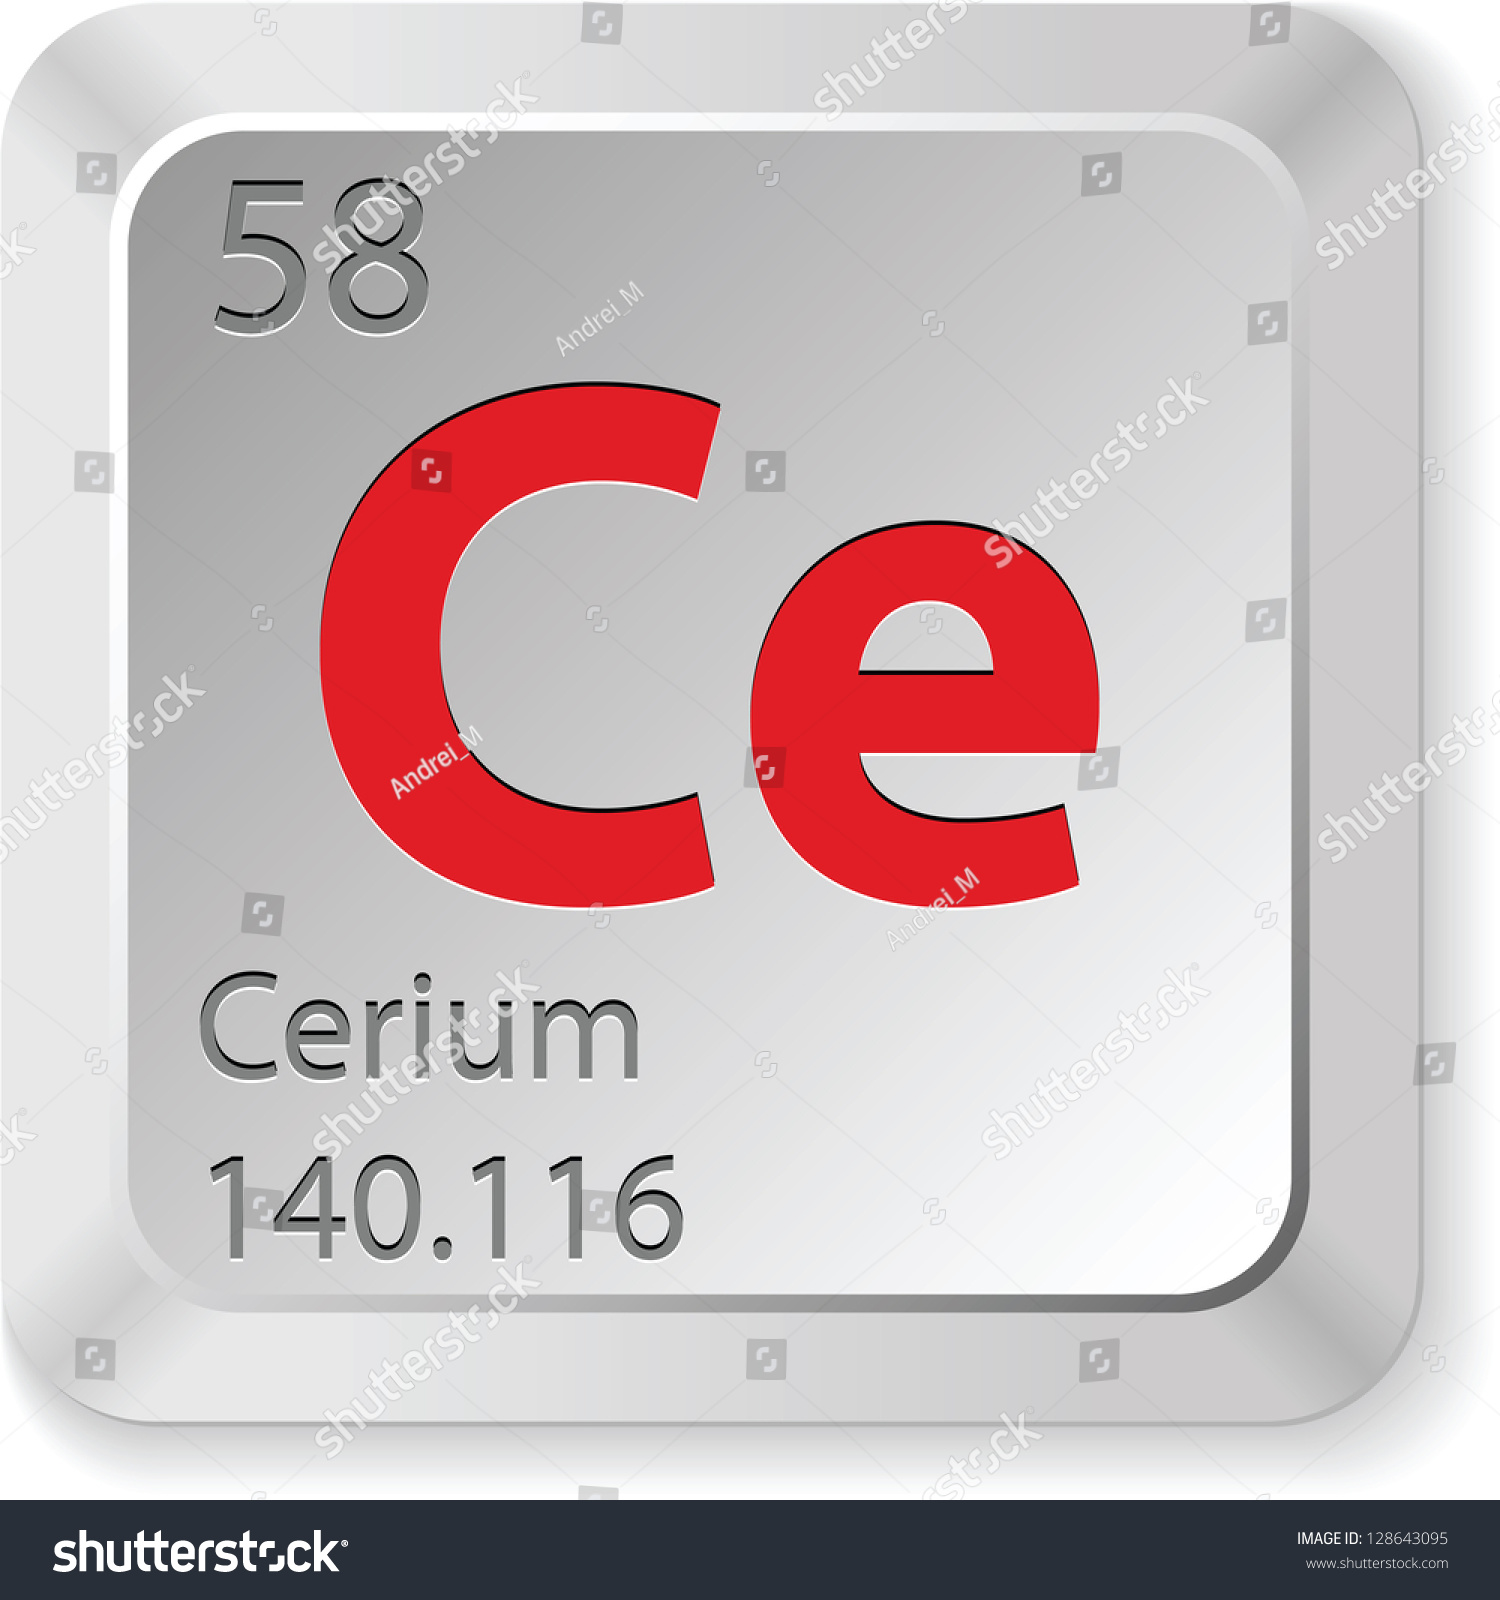 Cerium Images & Stock Pictures. Royalty Free Cerium Photos And ...